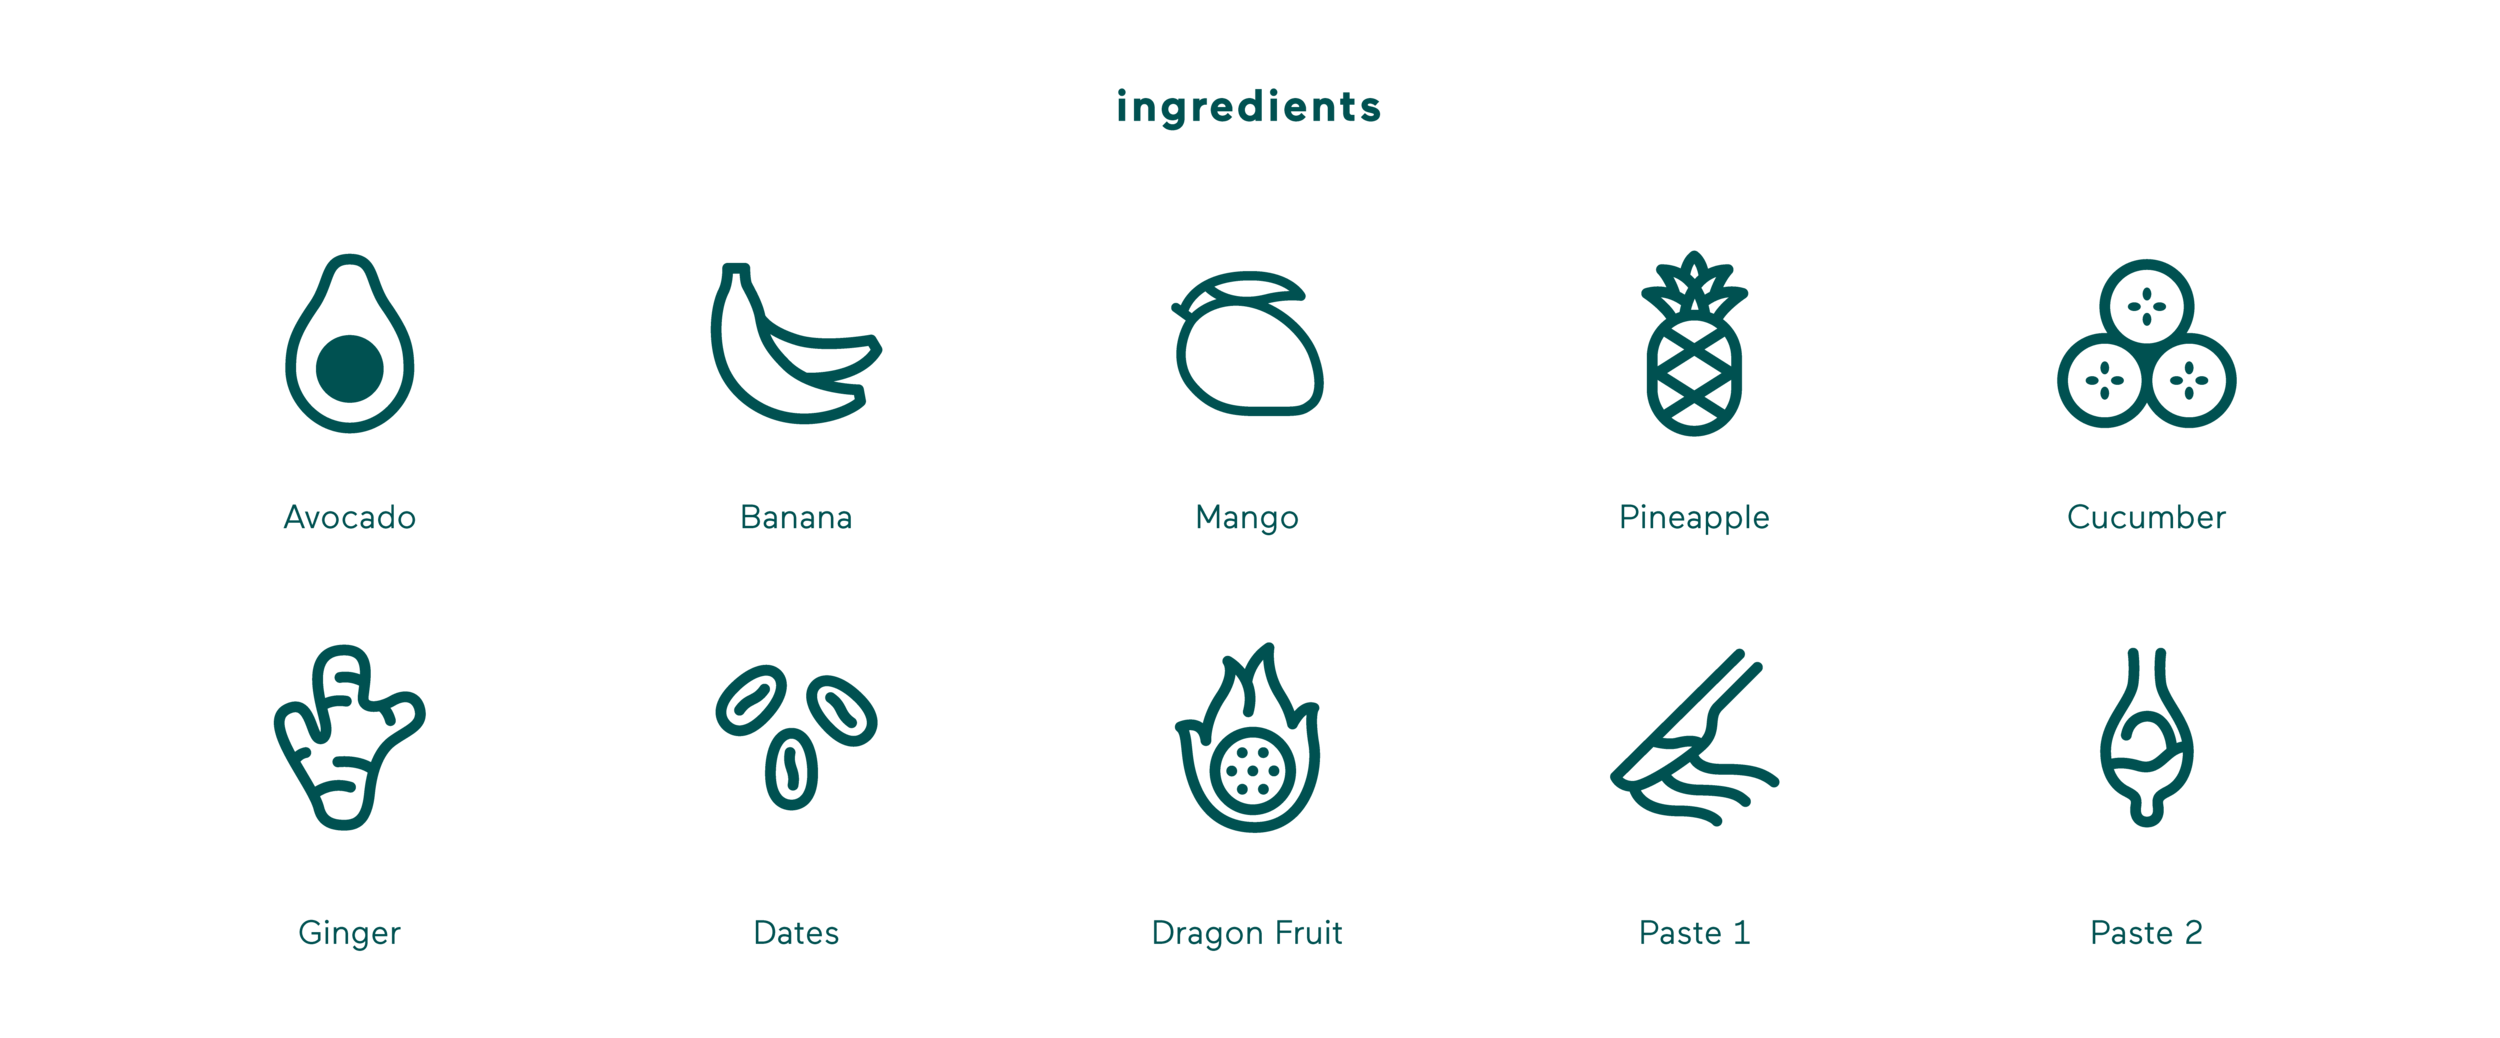 Ono-Icons-2-Ingredients.png